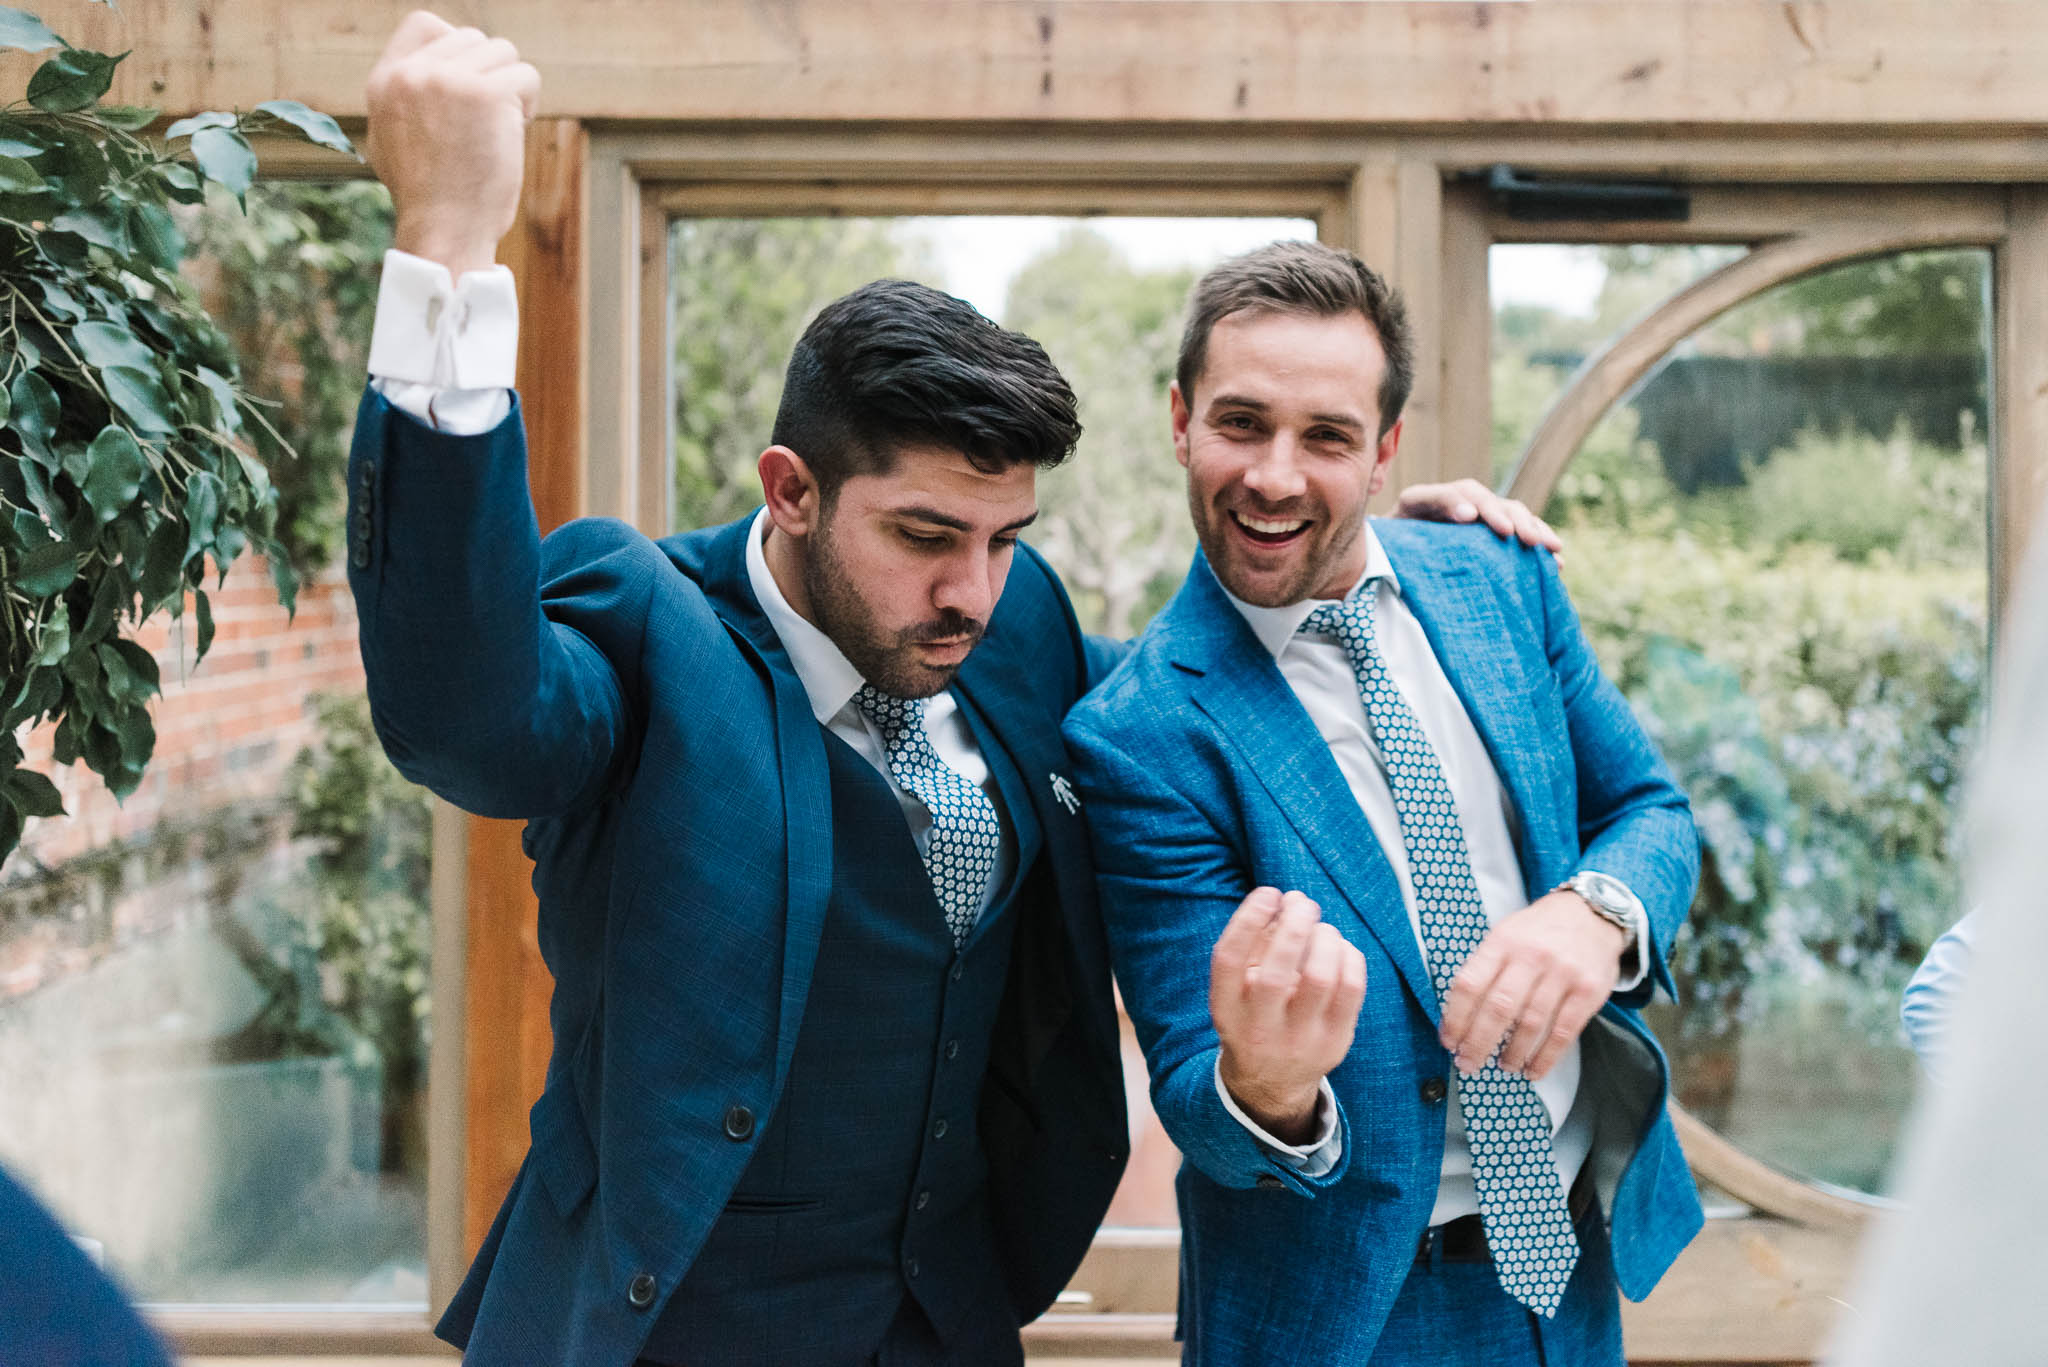 men having fun at wedding